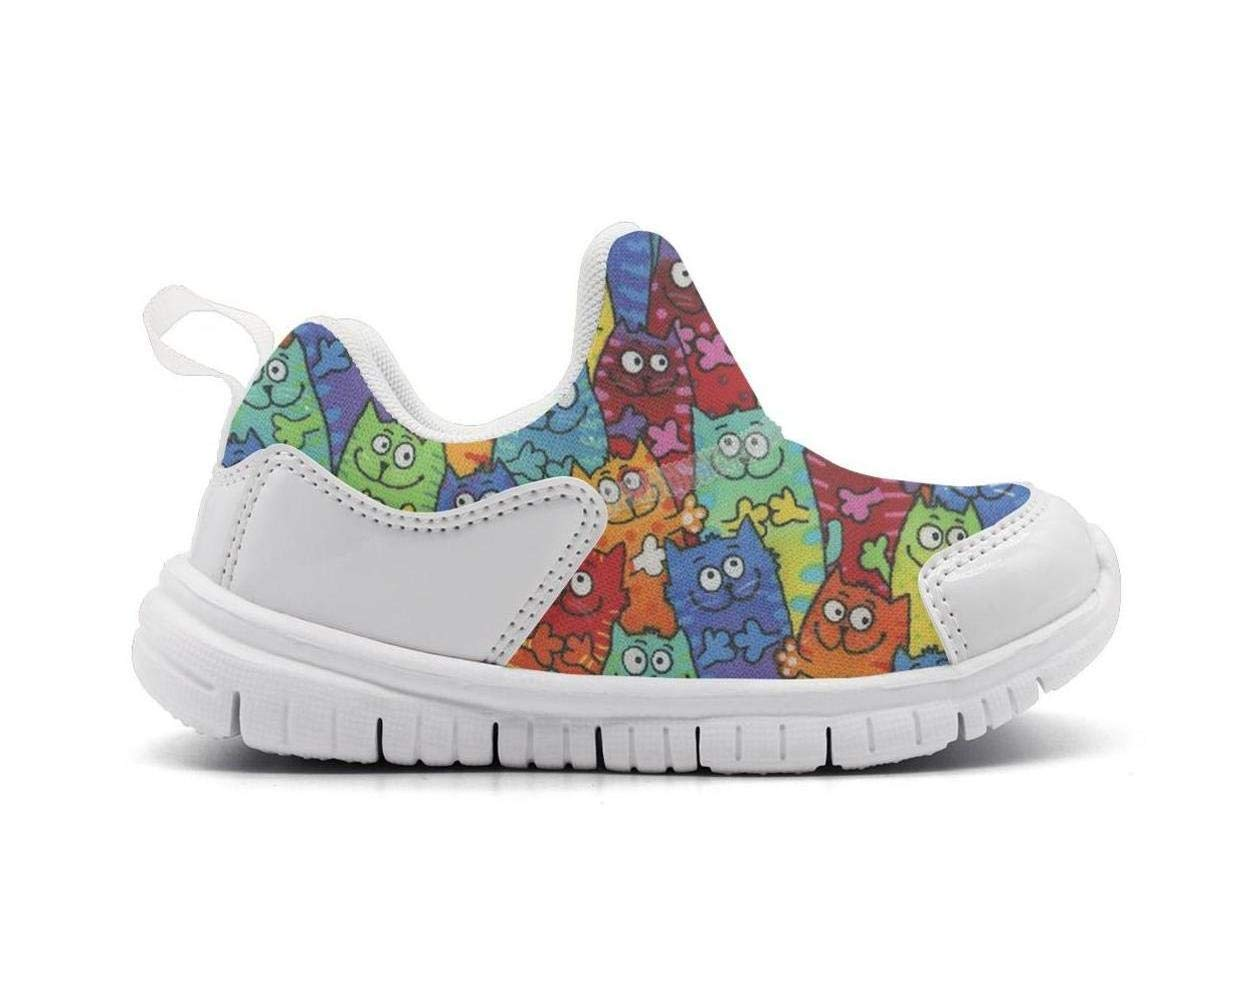 ONEYUAN Children Packed Cats cat-01 Kid Casual Lightweight Sport Shoes Sneakers Walking Athletic Shoes